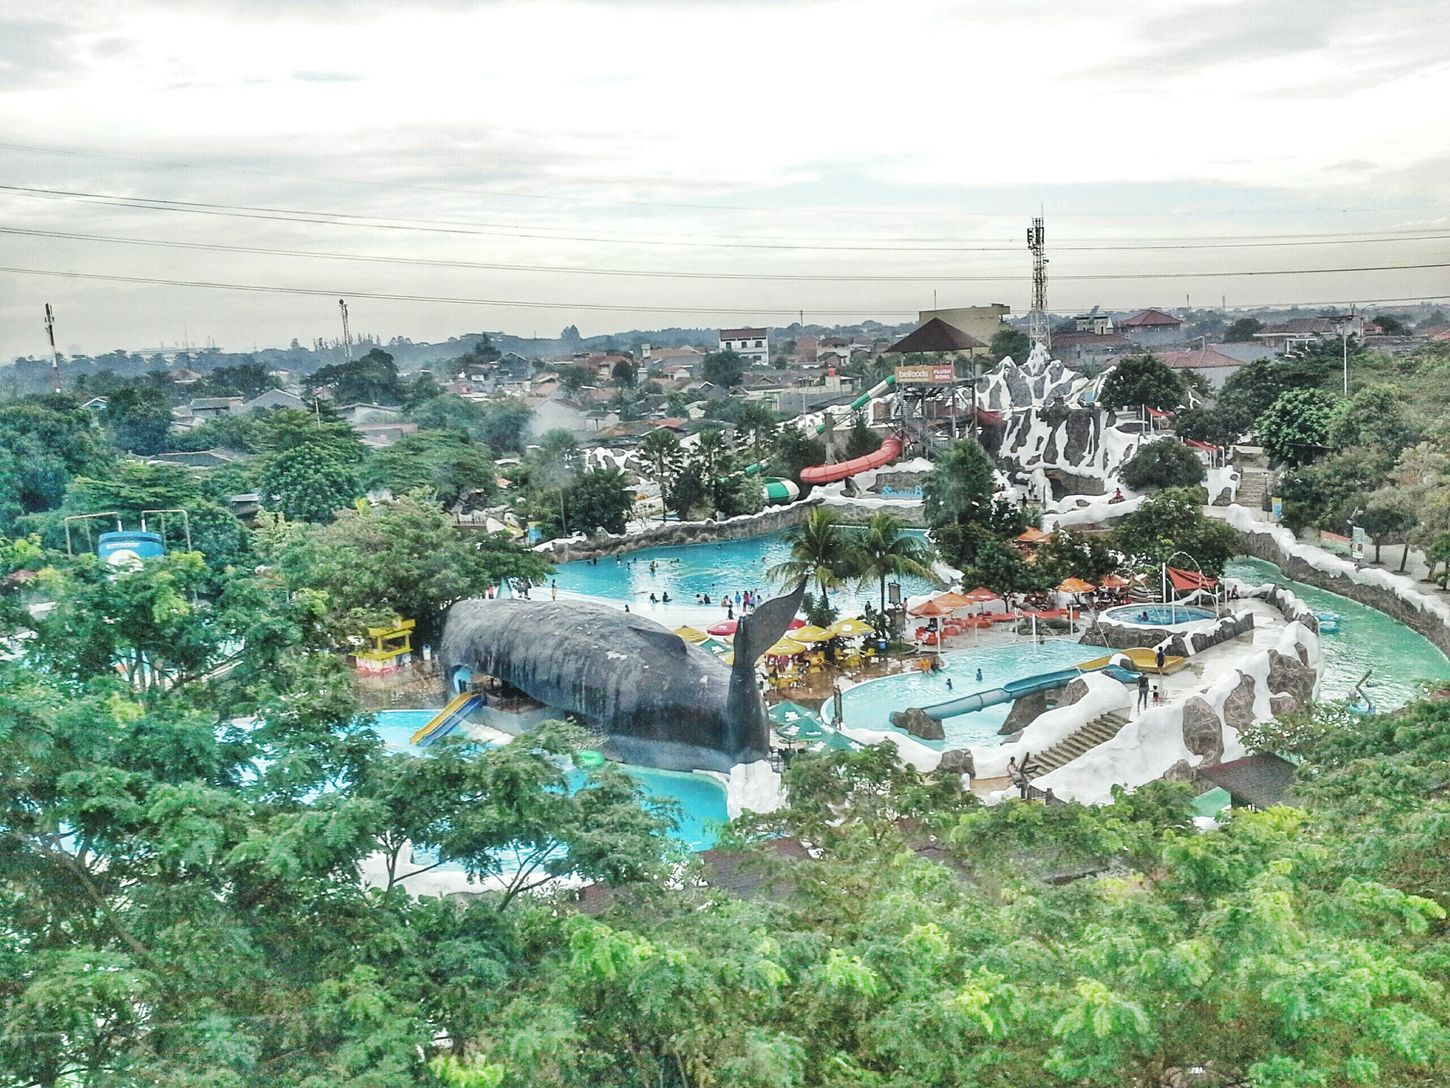 Snowbay view from kereta gantung Waterpark Tamanminijakarta Taman Mini Indonesia Indah Andrographer AndroidPhotography Snapseed